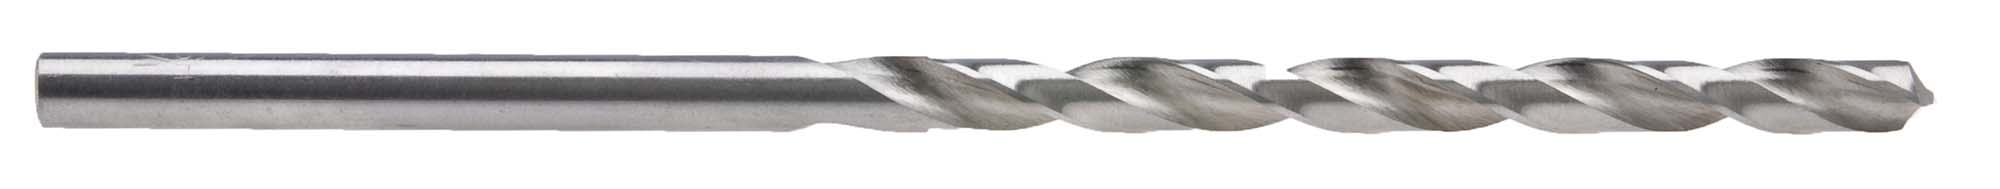 "49/64""  ""Taper Length"" Long Straight Shank Drill Bit, 9 7/8"" Overall Length, High Speed Steel"